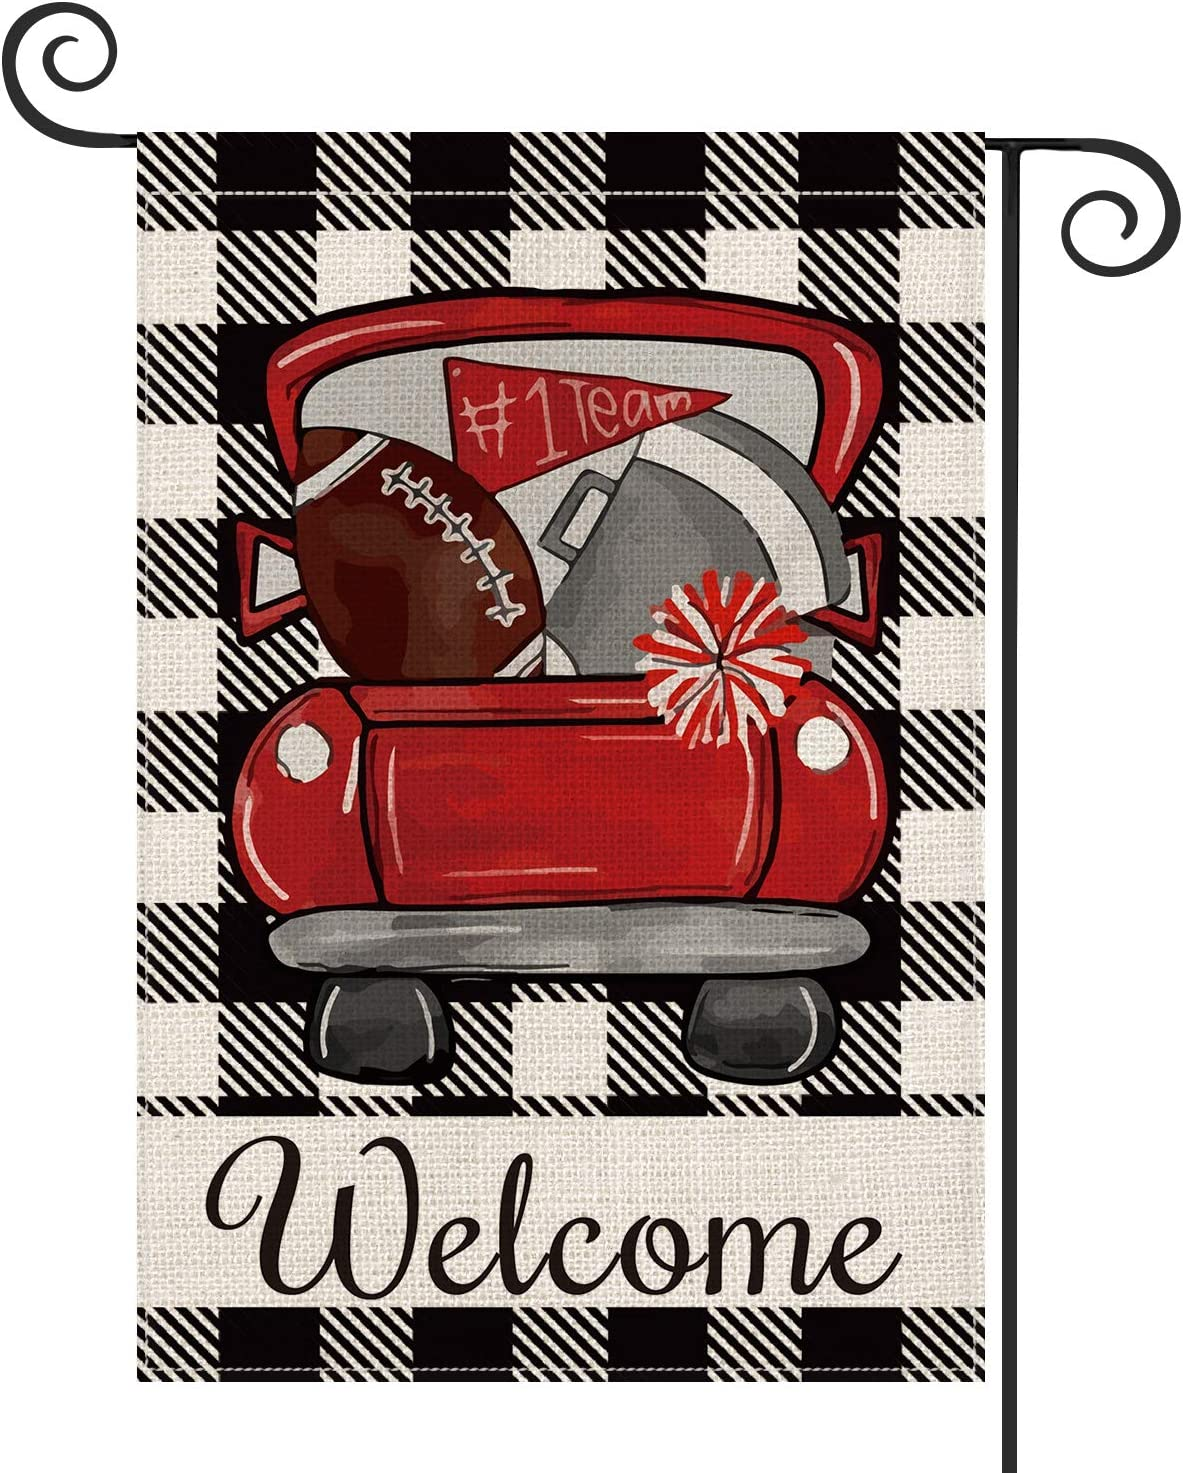 AVOIN Buffalo Plaid Football Truck Welcome Garden Flag Vertical Double Sided, Sport Flag Yard Outdoor Decoration 12.5 x 18 Inch